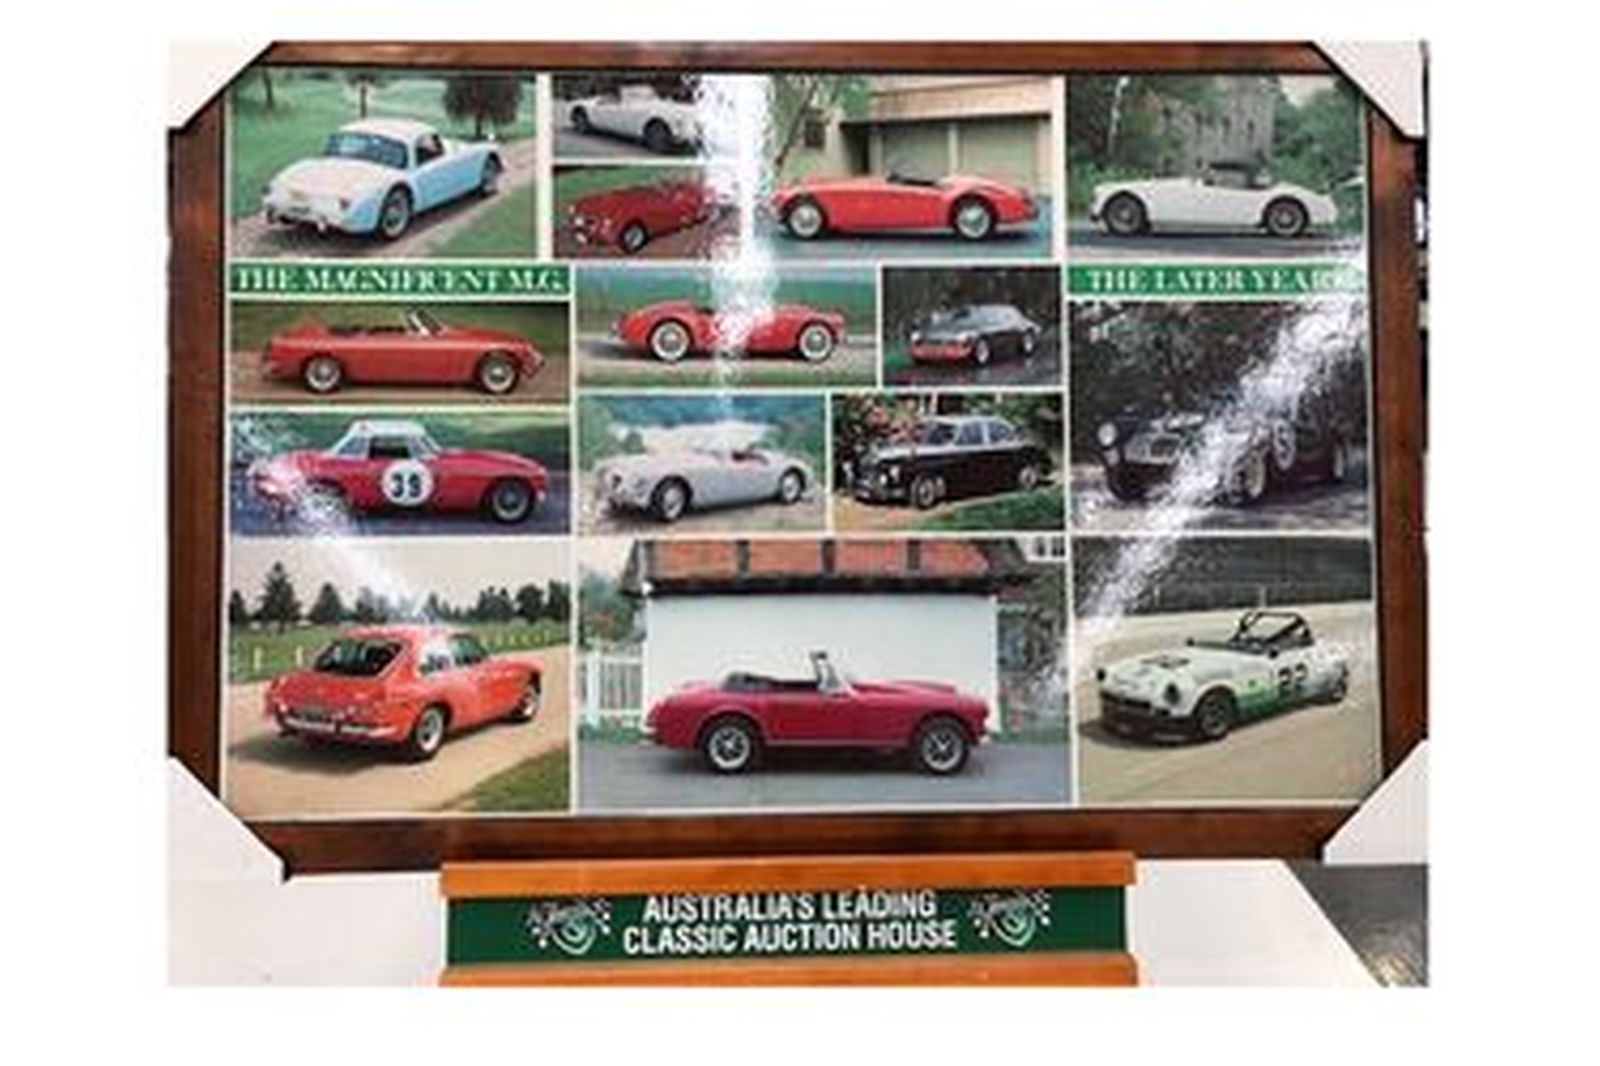 Framed Poster - The Magnificent MG - Late Years (Size 40 by 27'')